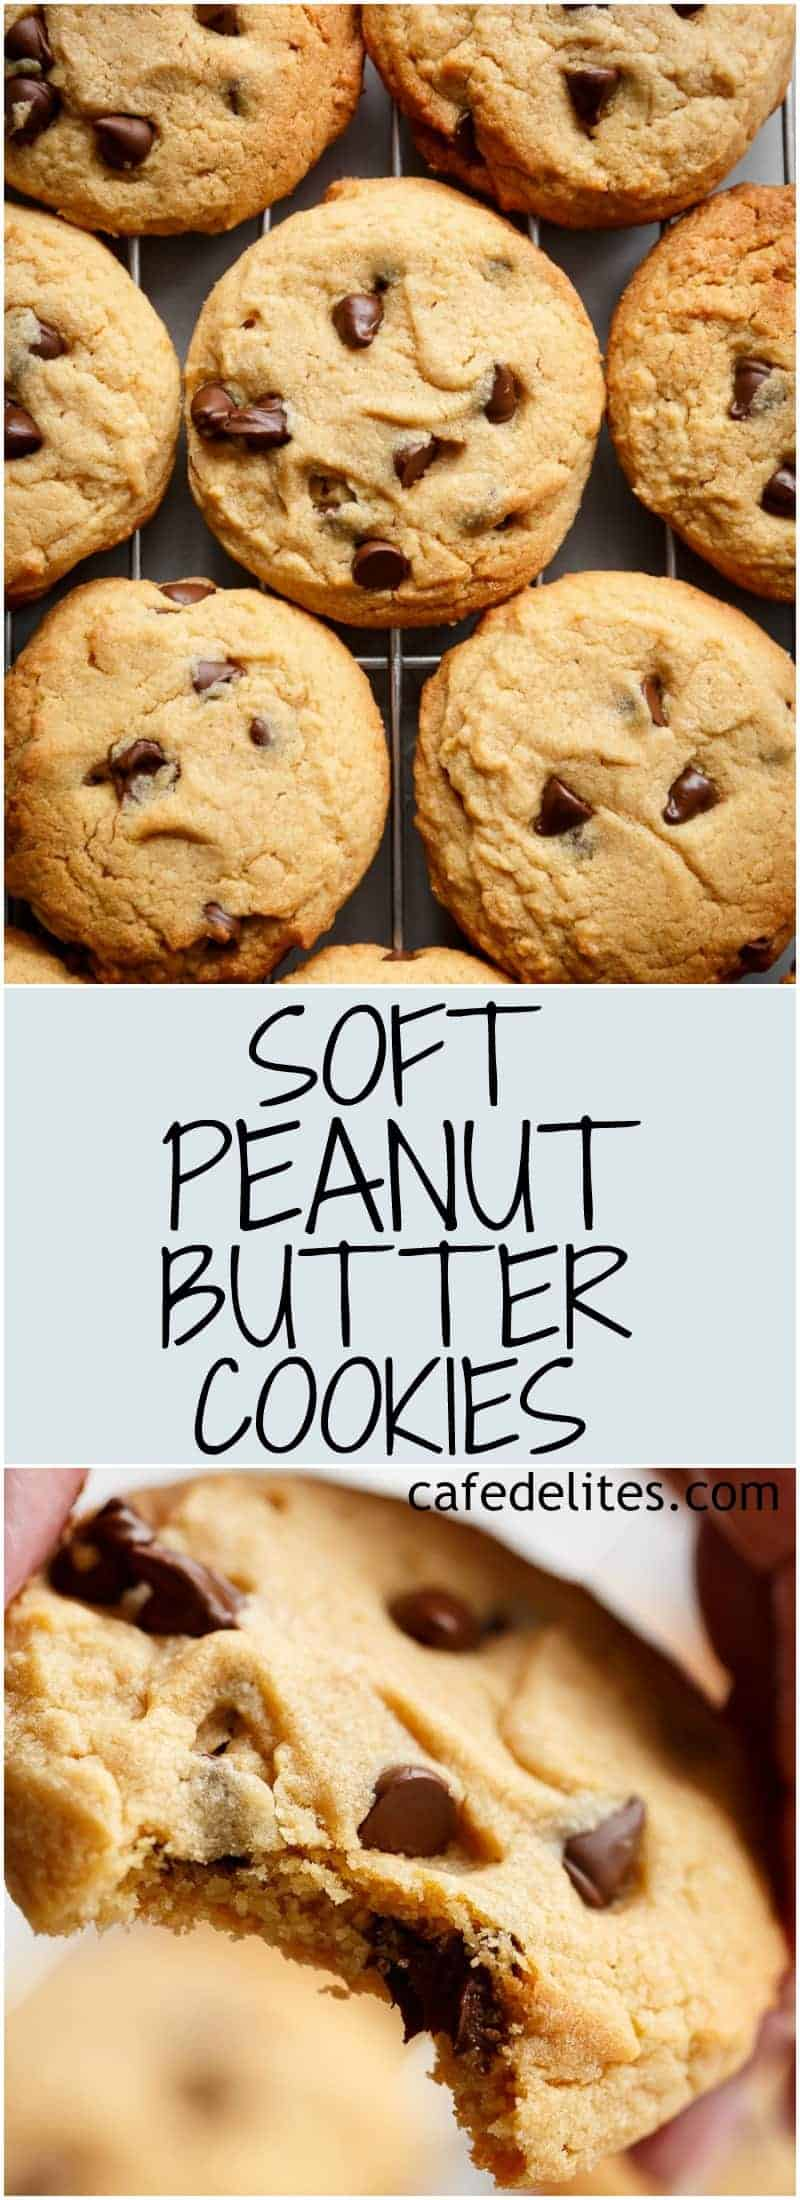 Soft Peanut Butter Cookies are crispy on the outside, soft and chewy on the inside, and ready in 15 minutes! NO CHILL TIME REQUIRED! YEARS to PERFECT! | https://cafedelites.com